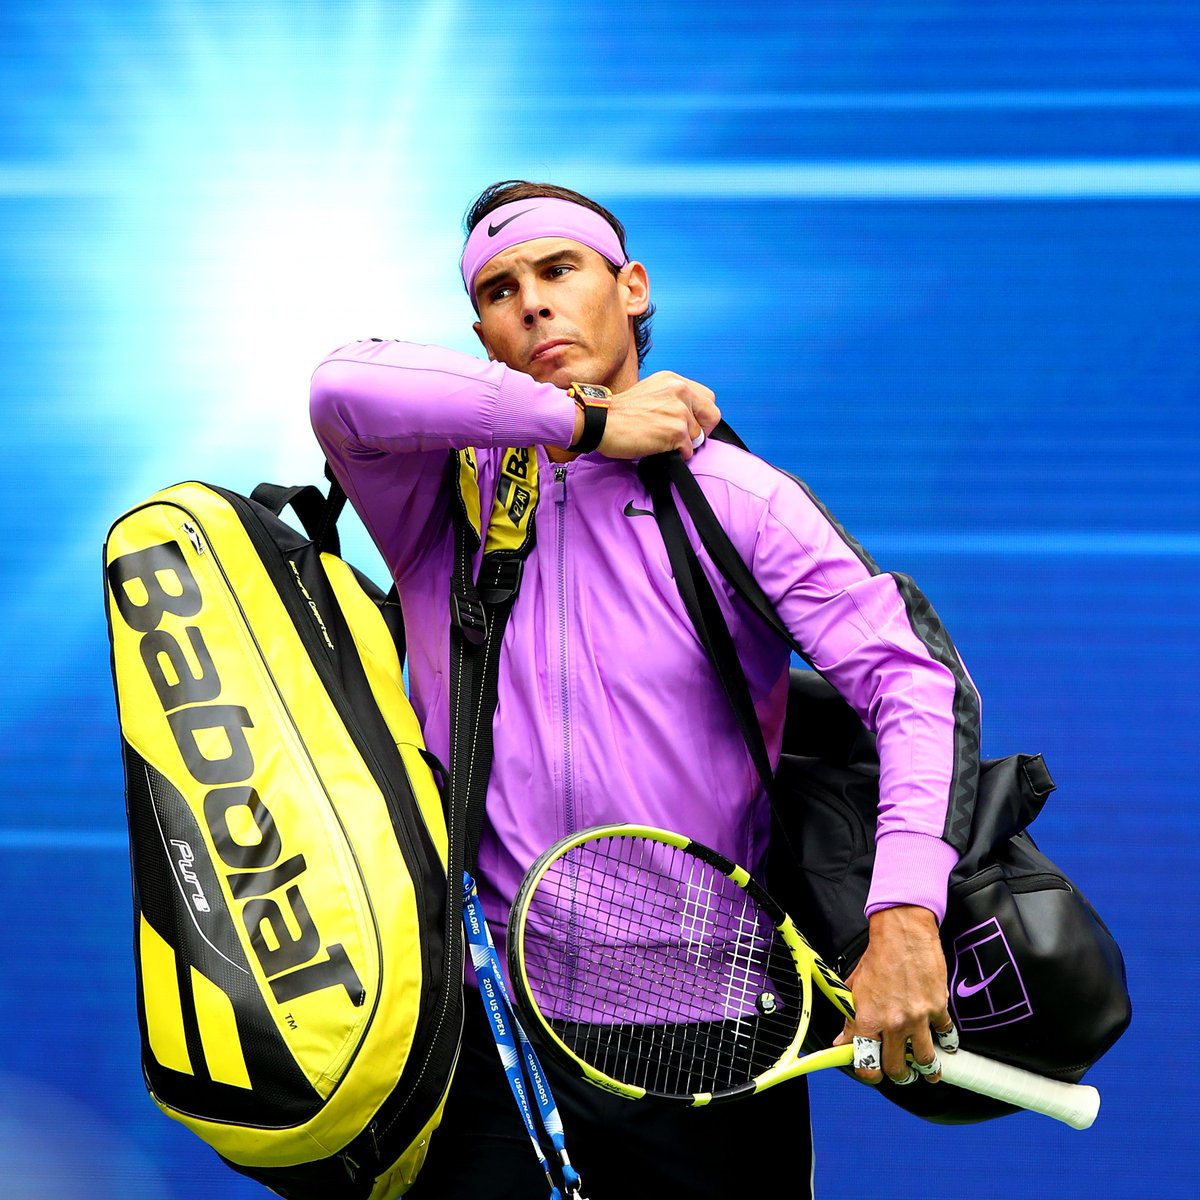 Us Open Tennis On Twitter We Will Miss These All Time Greats In New York Retweet To Wish Rafa Roger A Speedy Return To Tennis